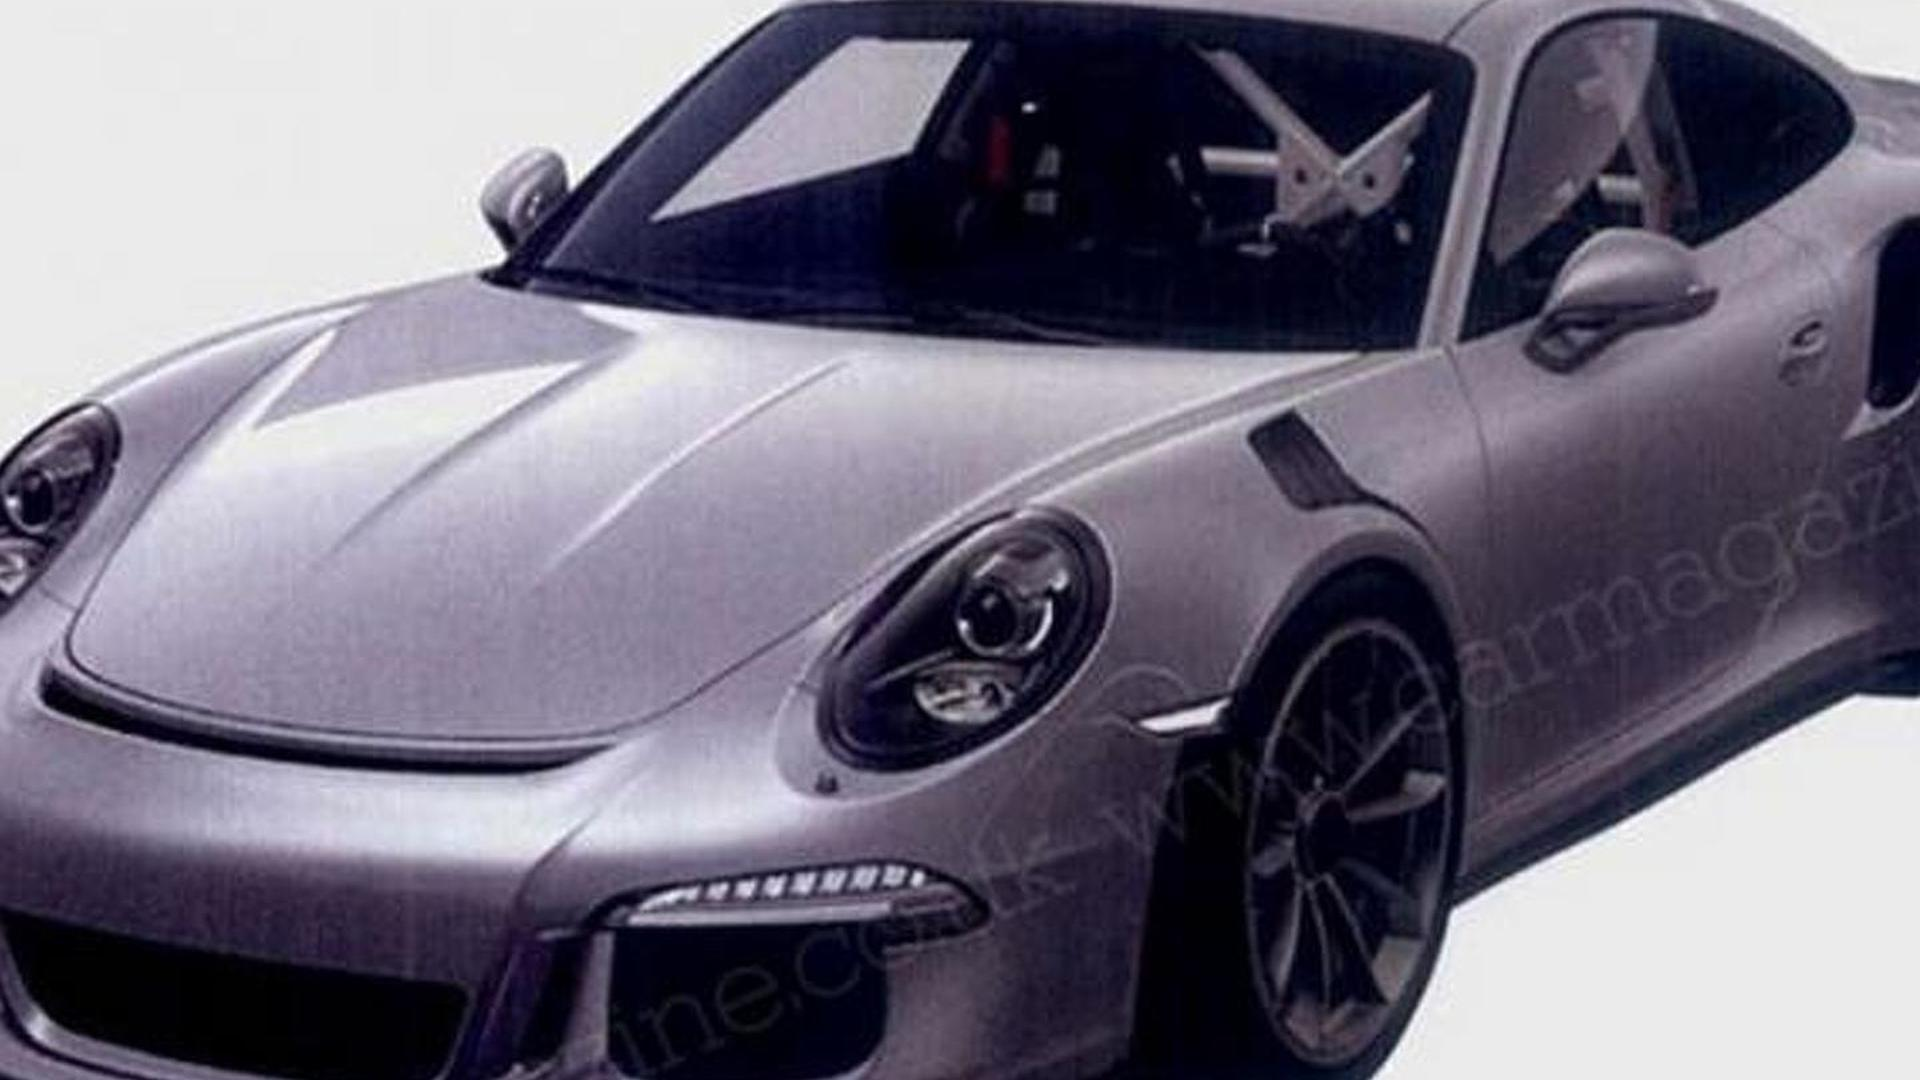 Porsche 911 GT3 RS revealed in new patent photos